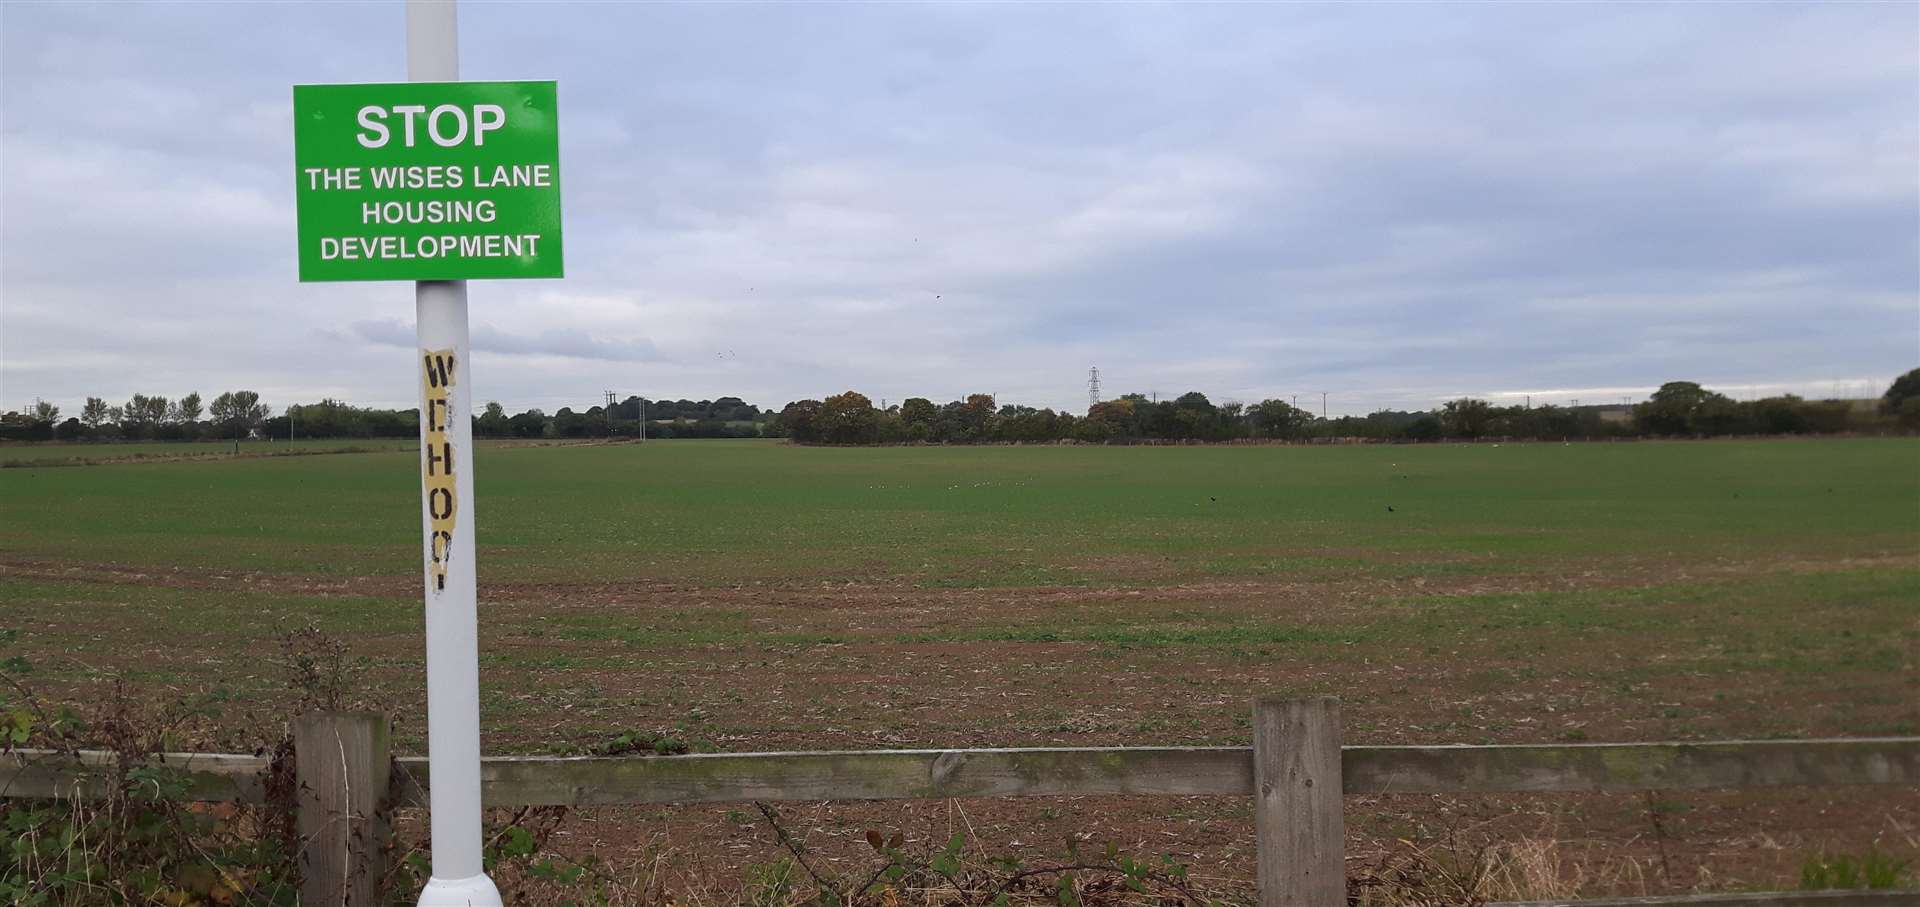 Campaigners have fought against plans for homes off Cryalls Lane and Wises Lane in Borden